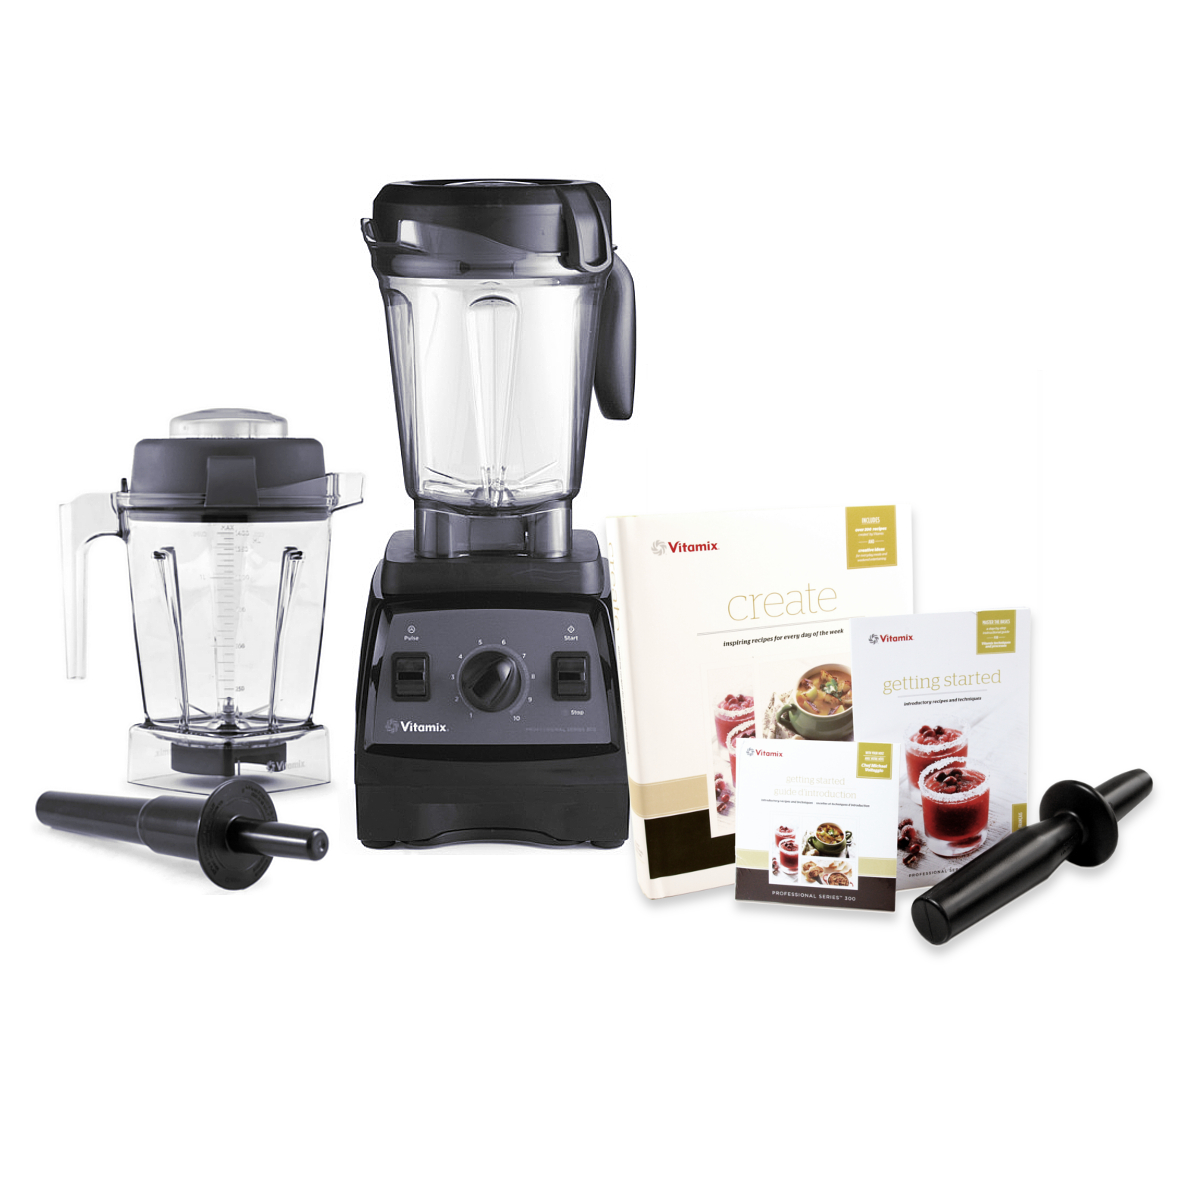 Vitamix CIA Professional Series 300 Onyx Blender With 64 Ounce Wet Container and 48 Ounce Wet Container